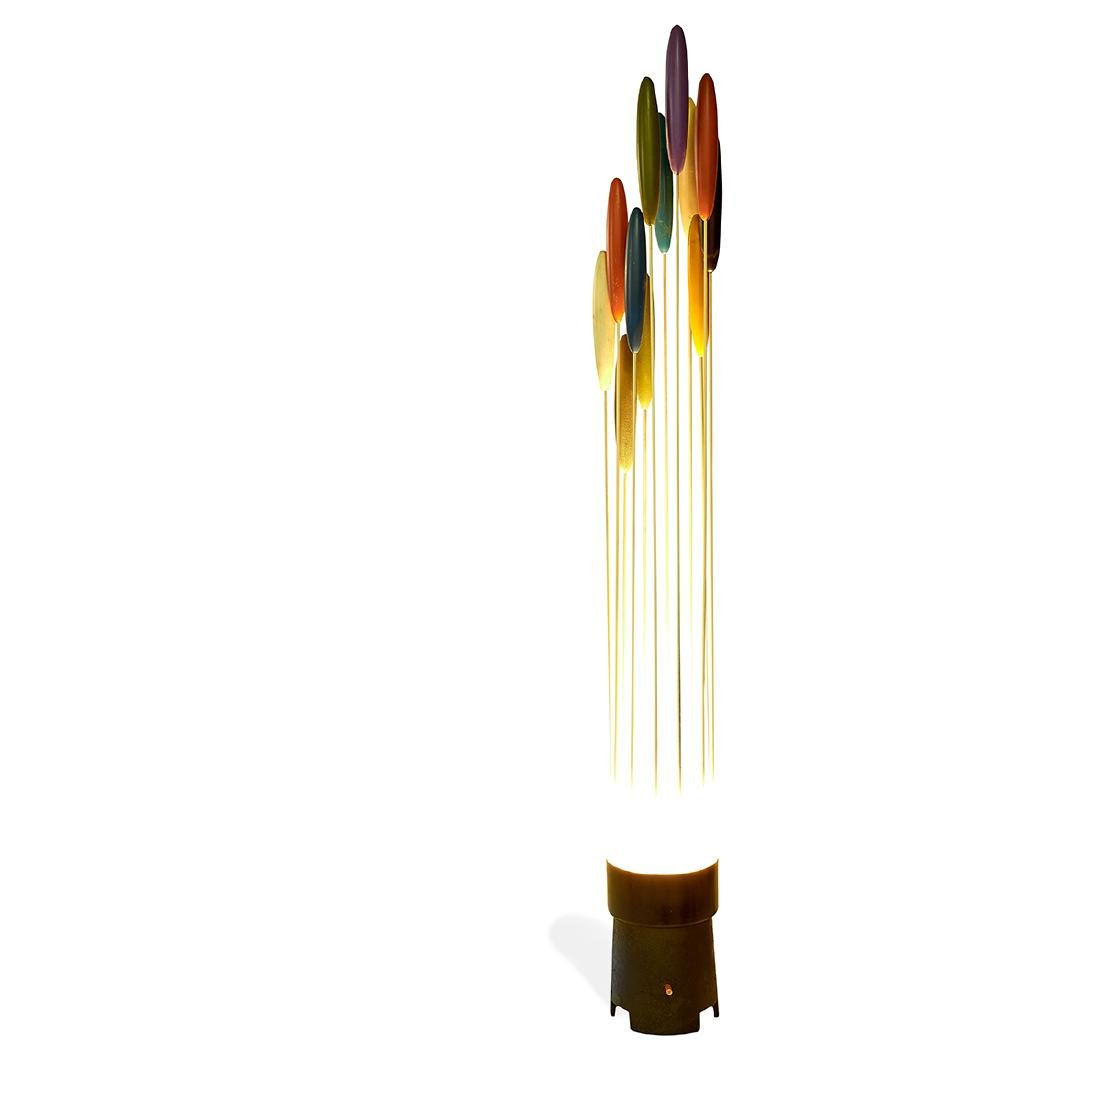 Bill Curry for Design Line 'Catailite' lamp (Cattail) - 3